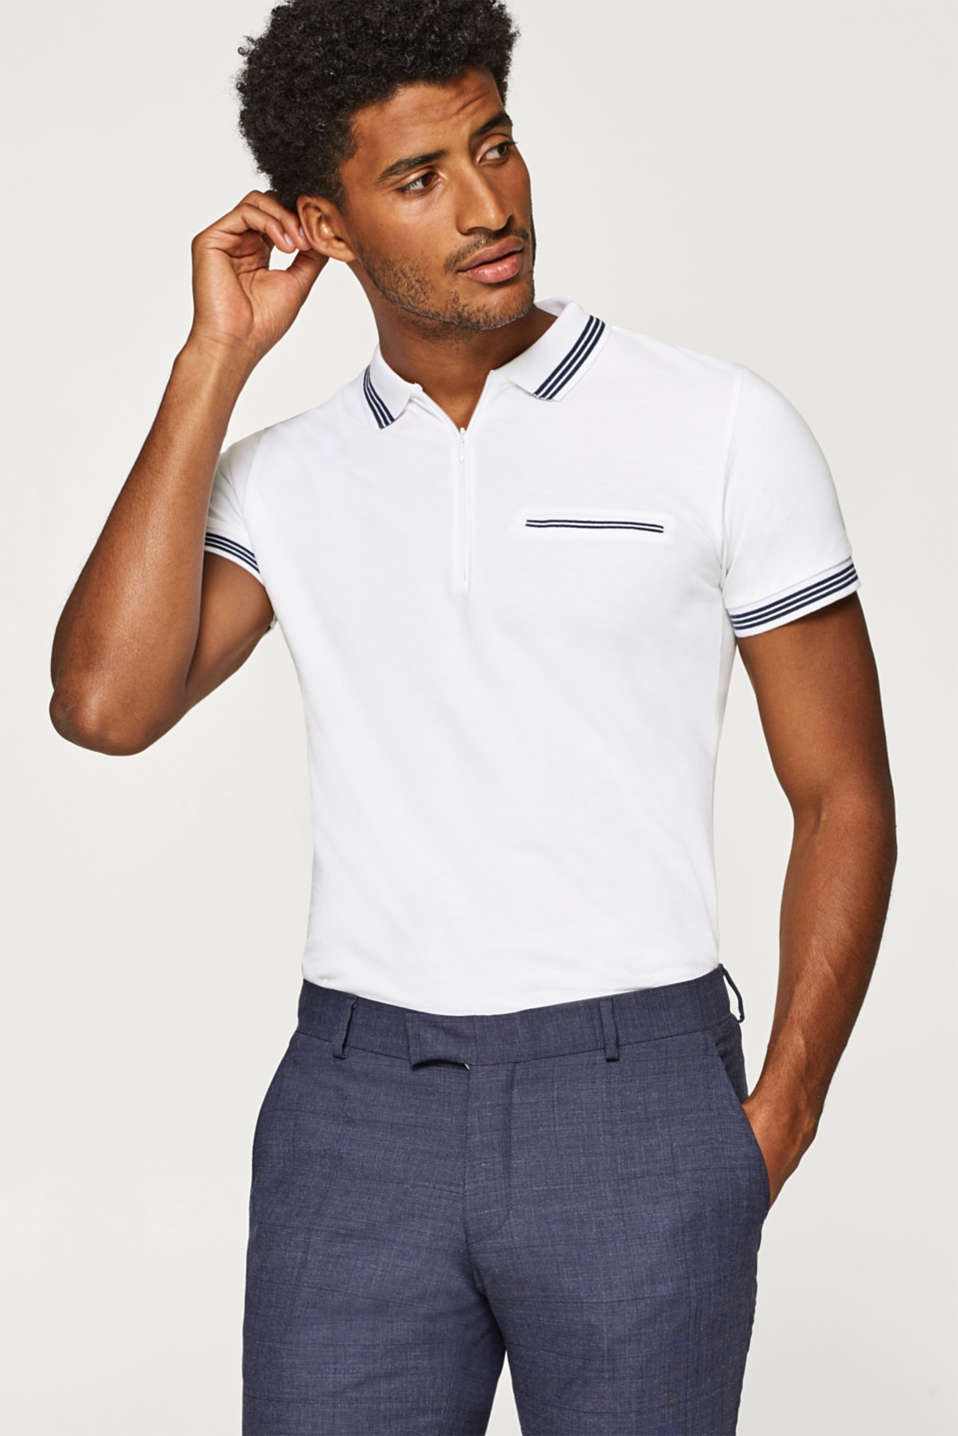 Esprit - Piqué polo shirt with a zip, 100% cotton